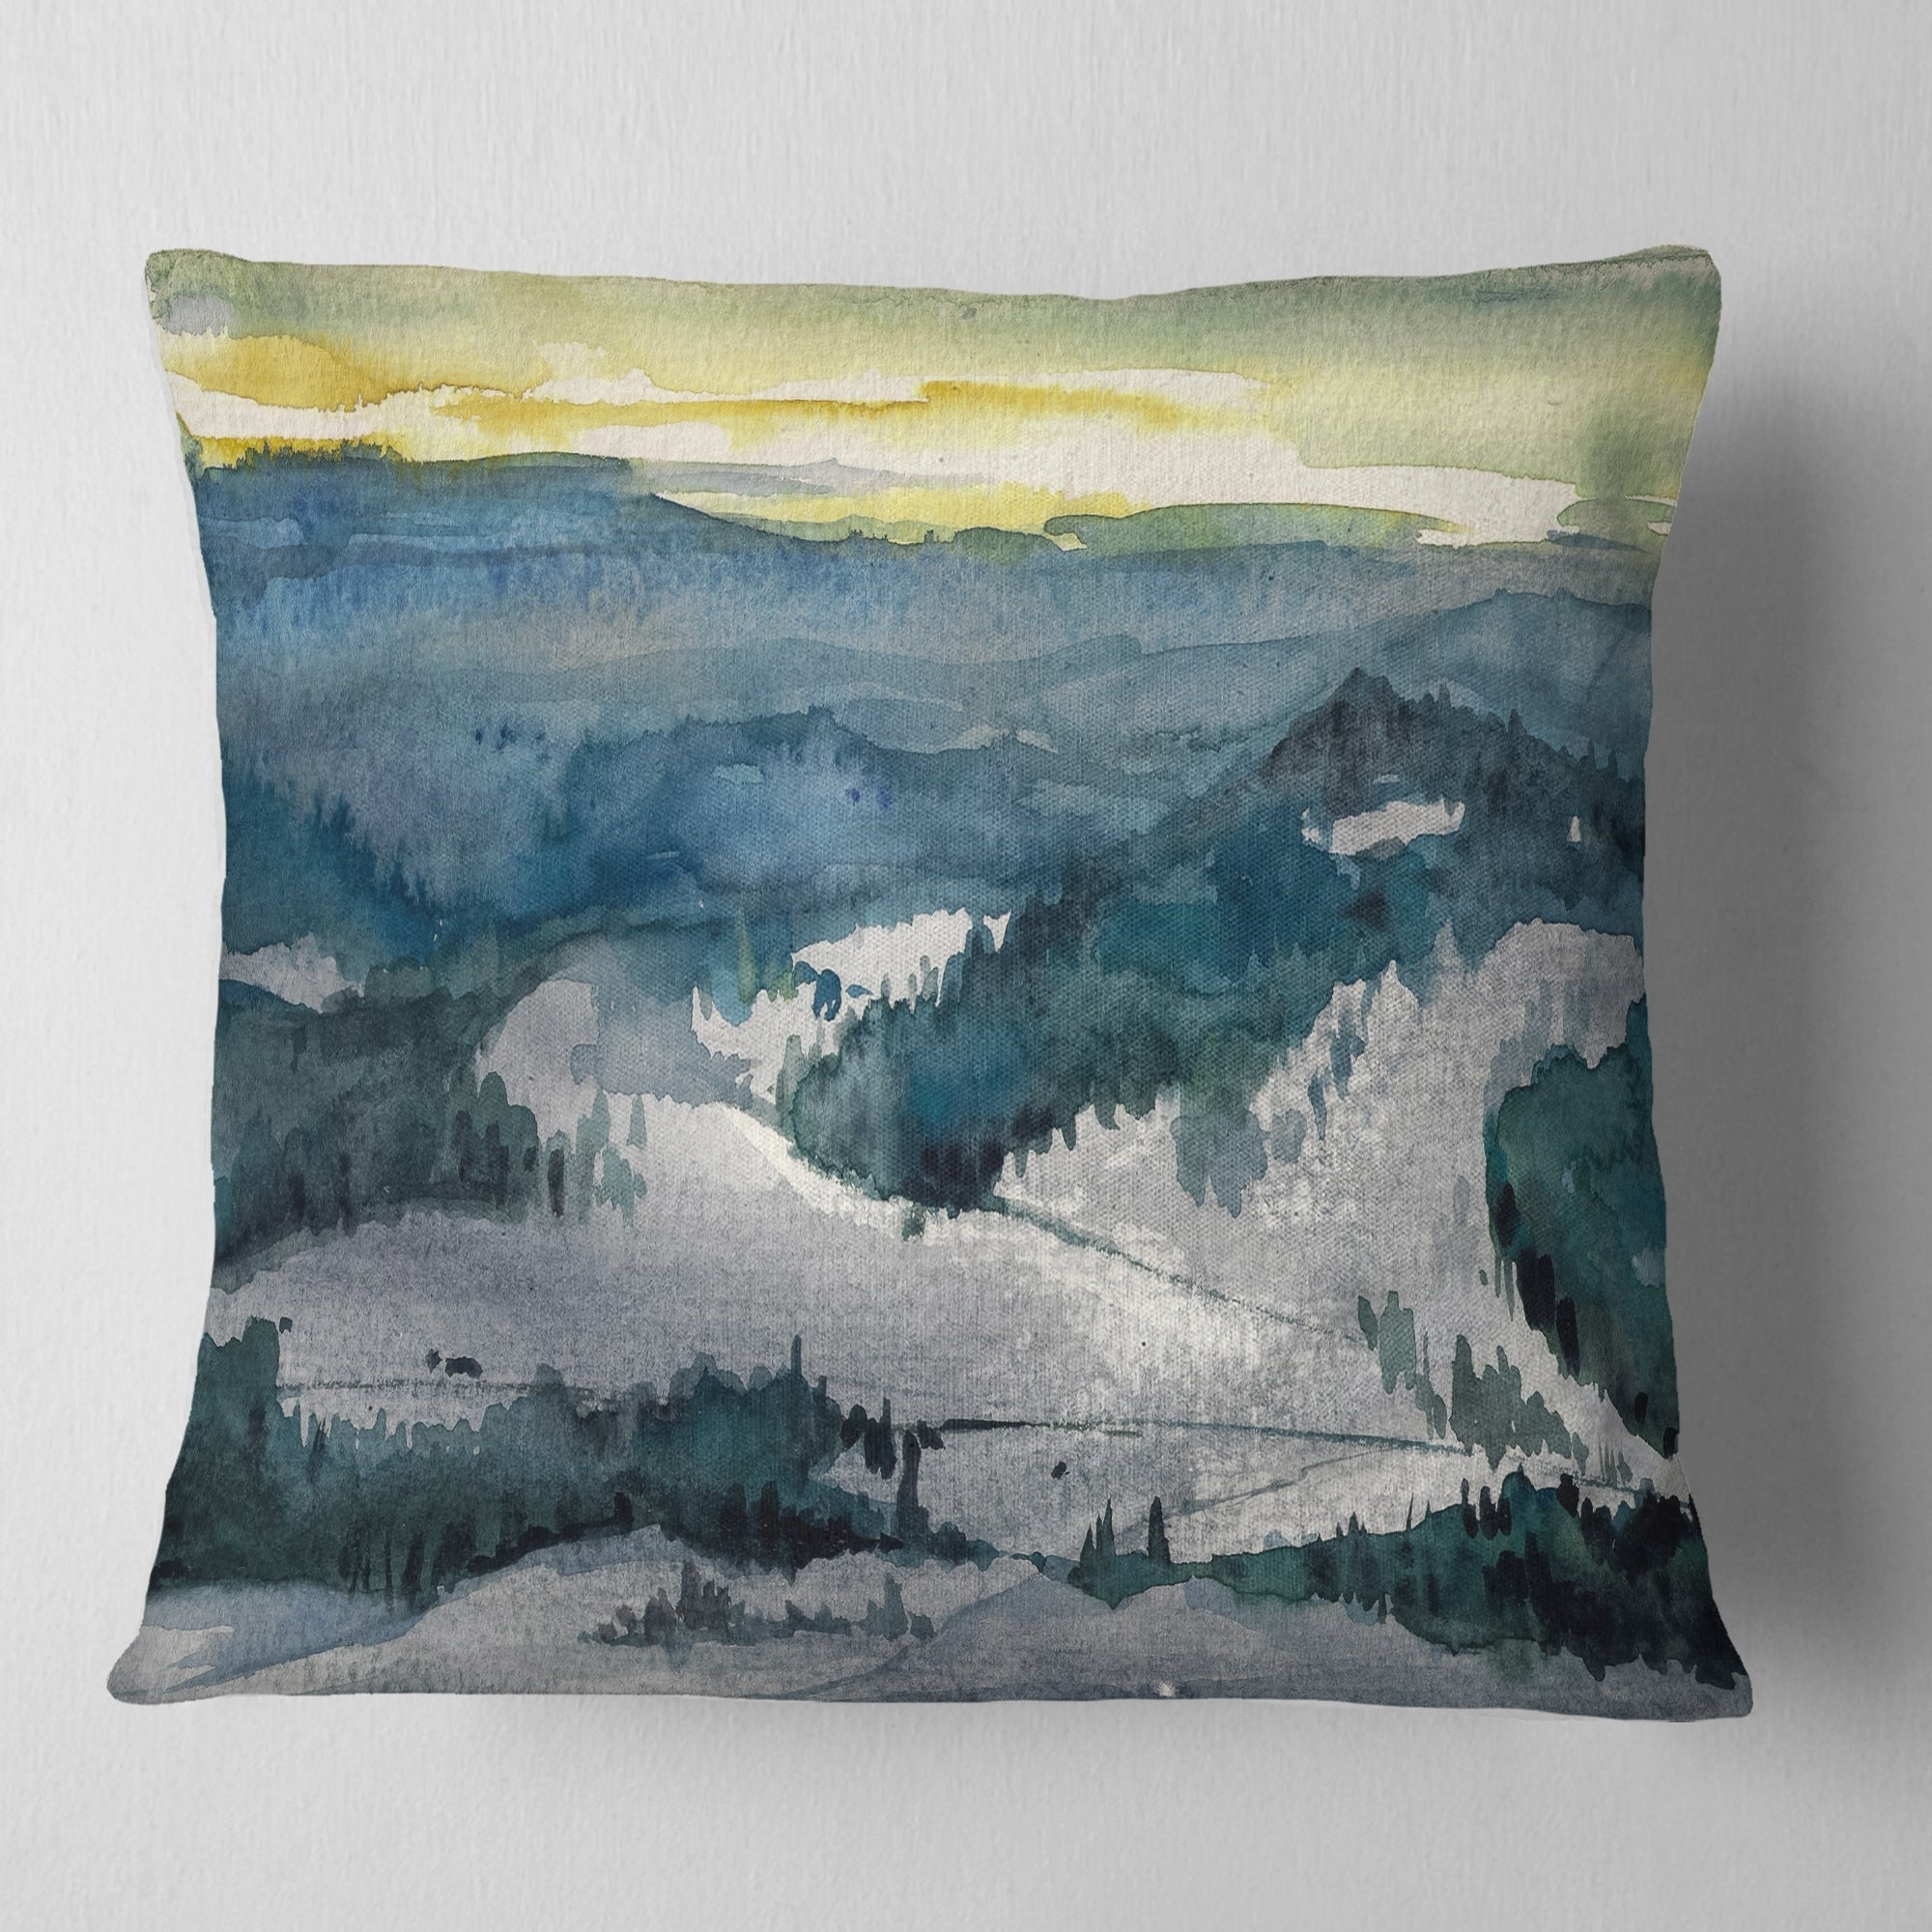 Designart Dark Mountains Watercolor Landscape Painting Throw Pillow On Sale Overstock 20945996